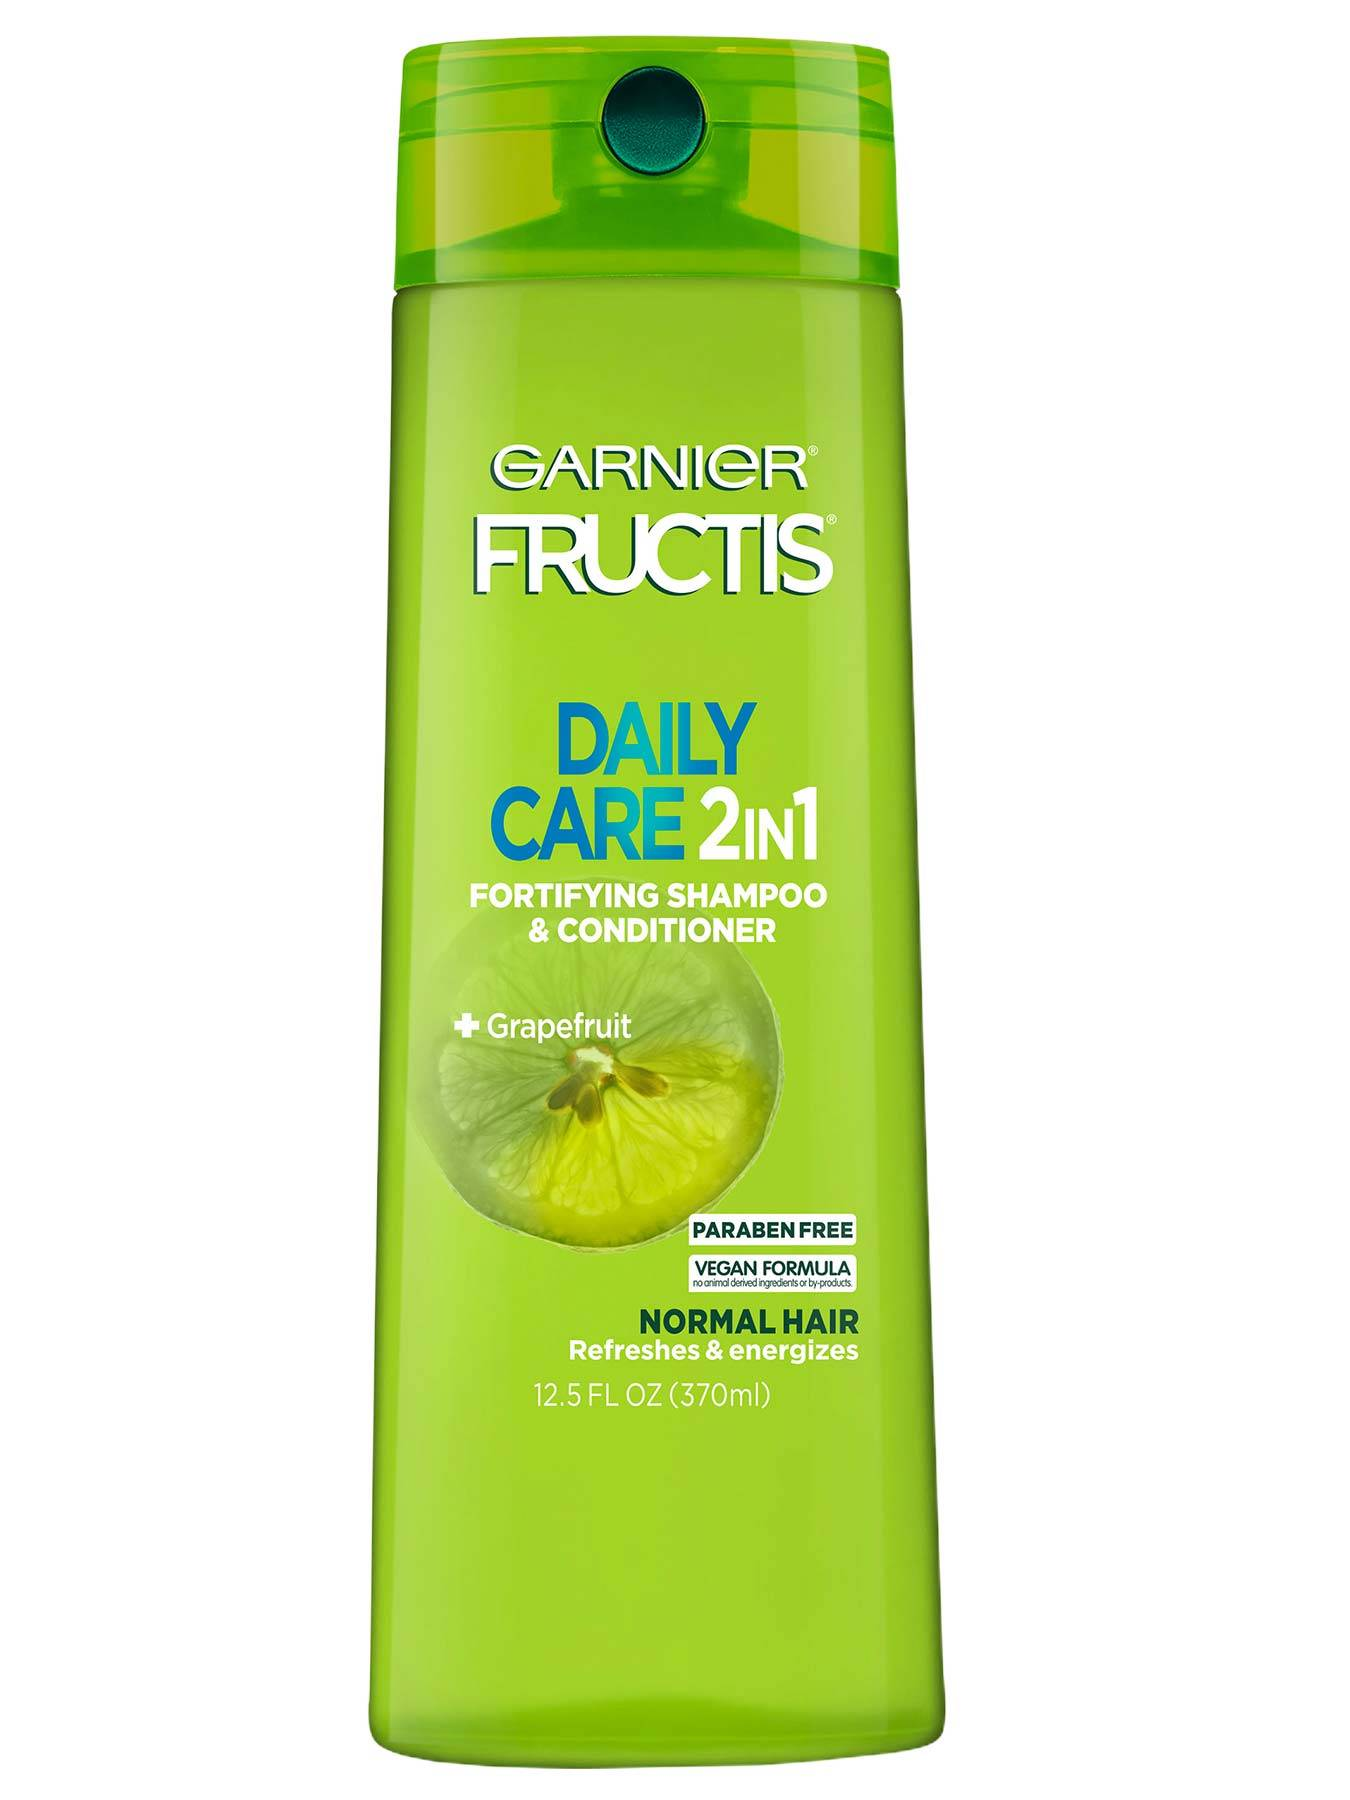 Daily Care 2 In 1 Shampoo And Conditioner Garnier Fructis